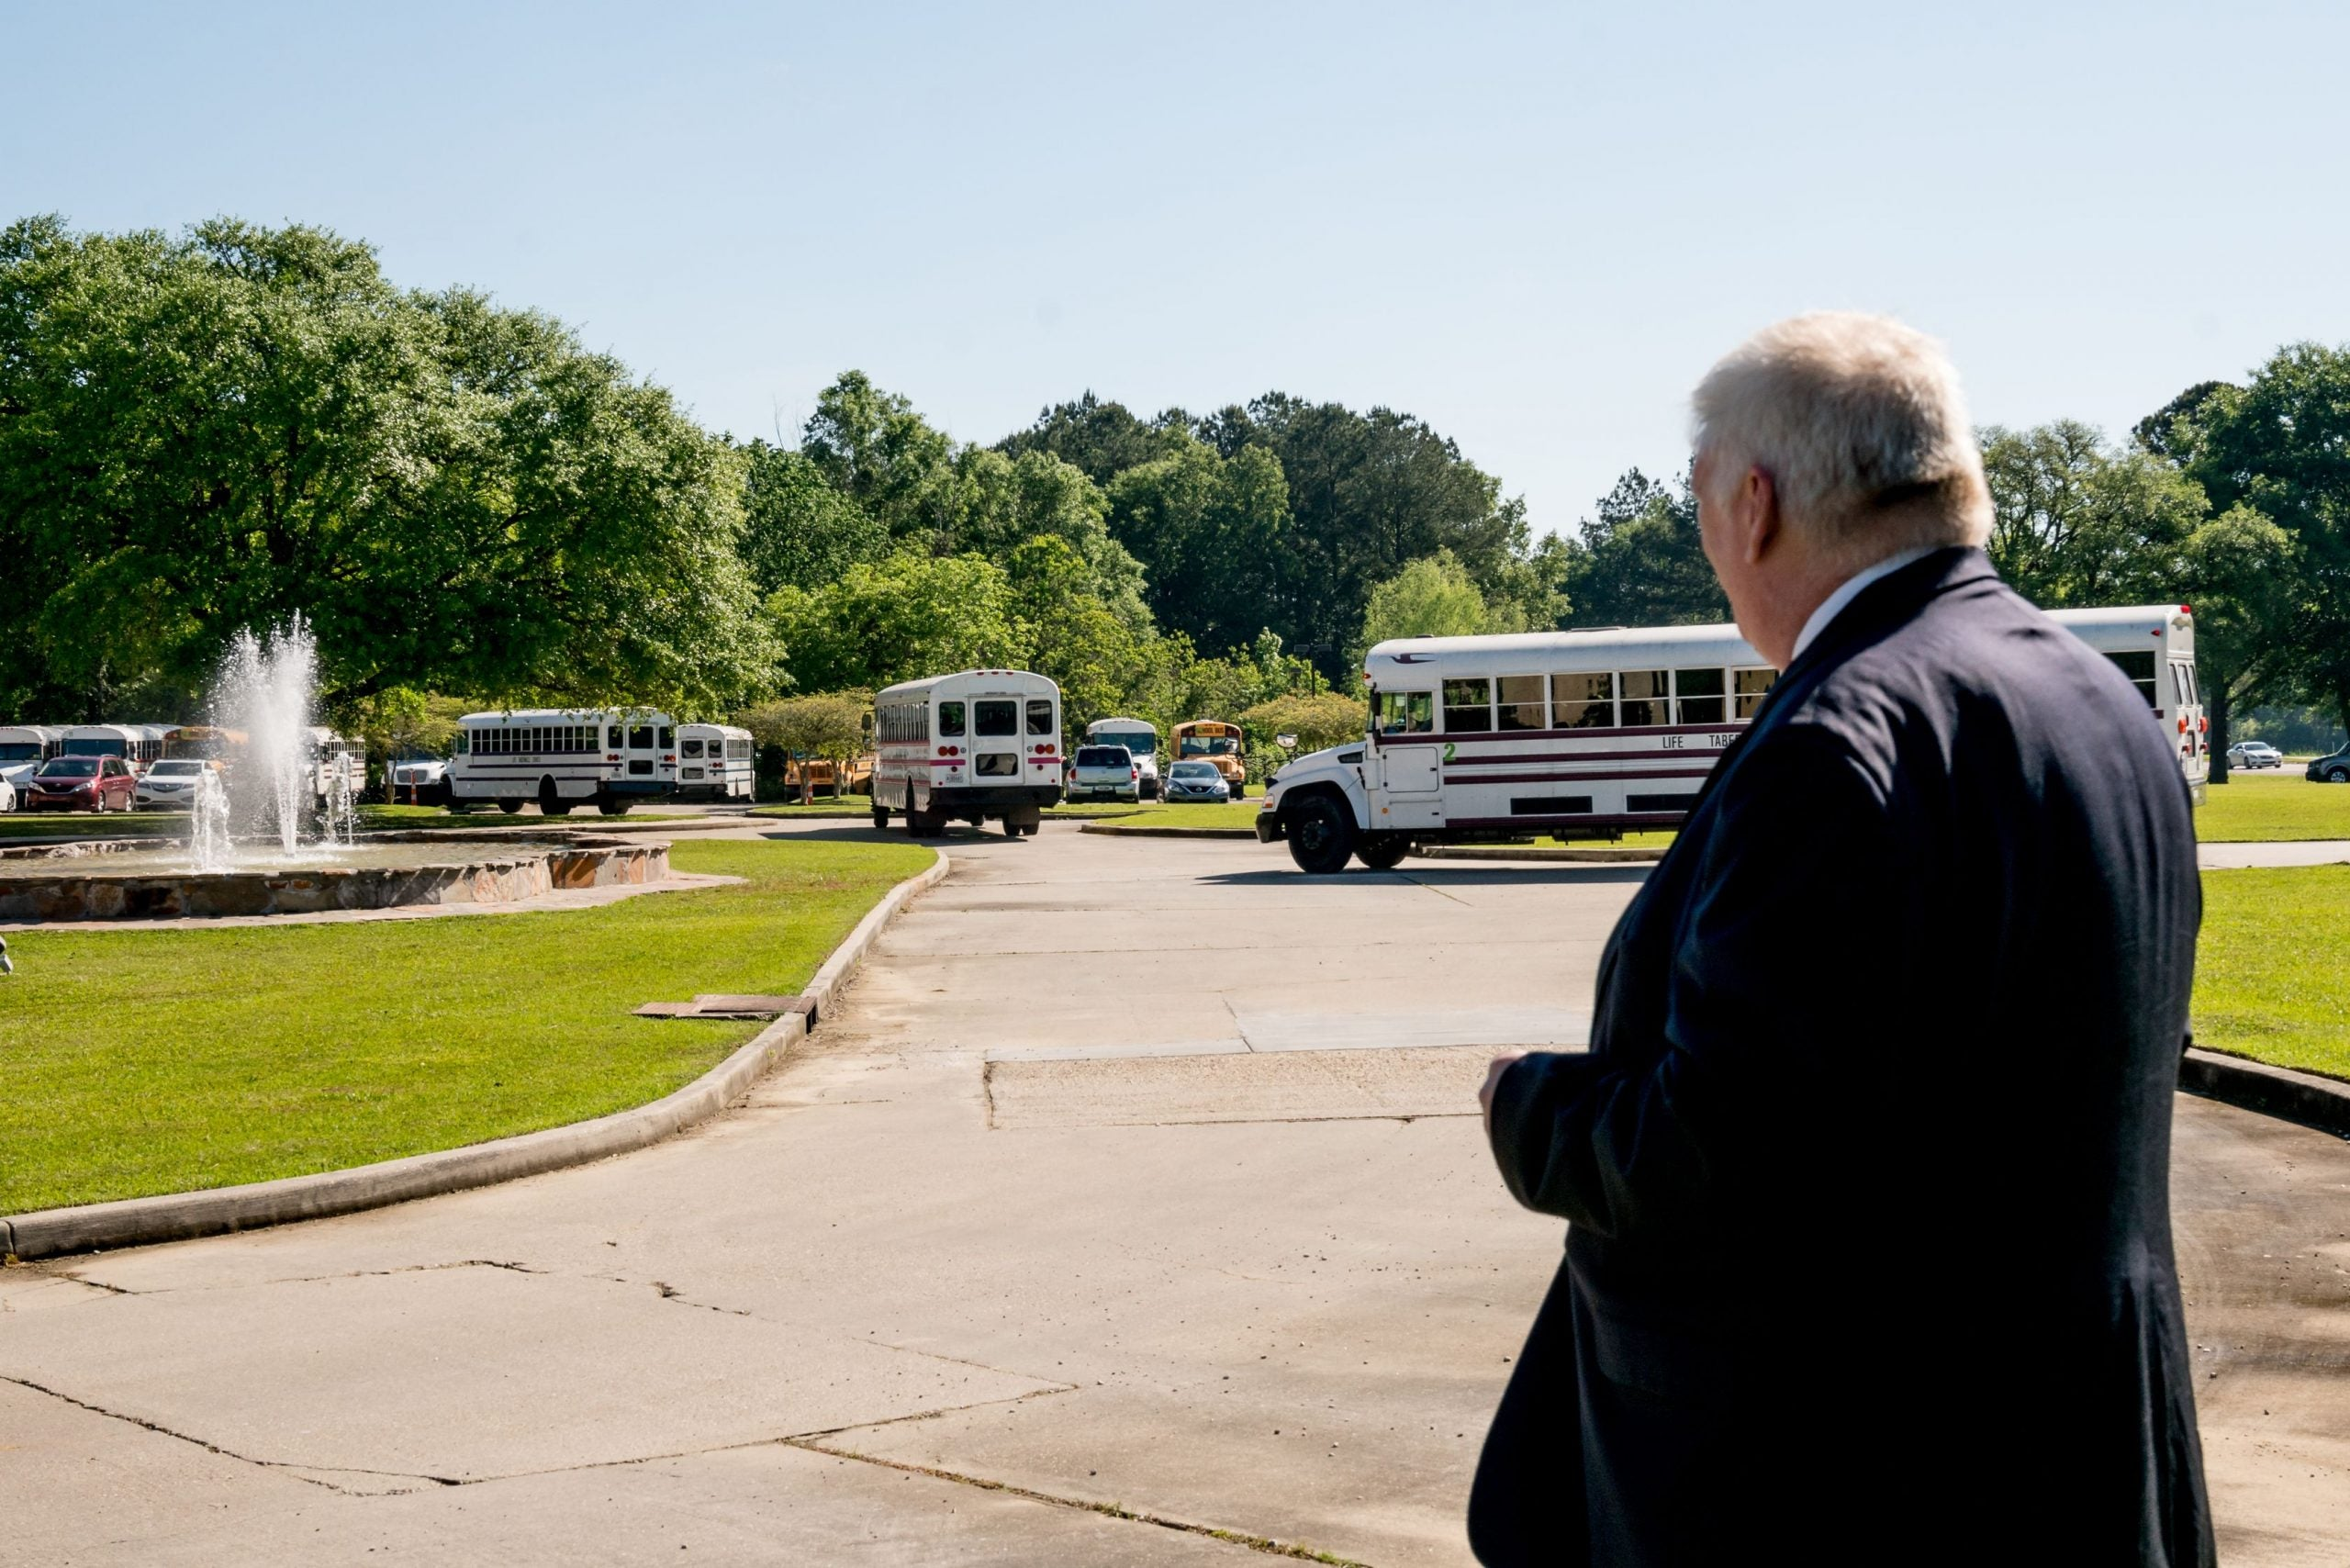 Joe Long, an attorney working with Pastor Tony Spell, watches as buses bring congregation members to Life Tabernacle Church for a Palm Sunday service in Baton Rouge, Louisiana